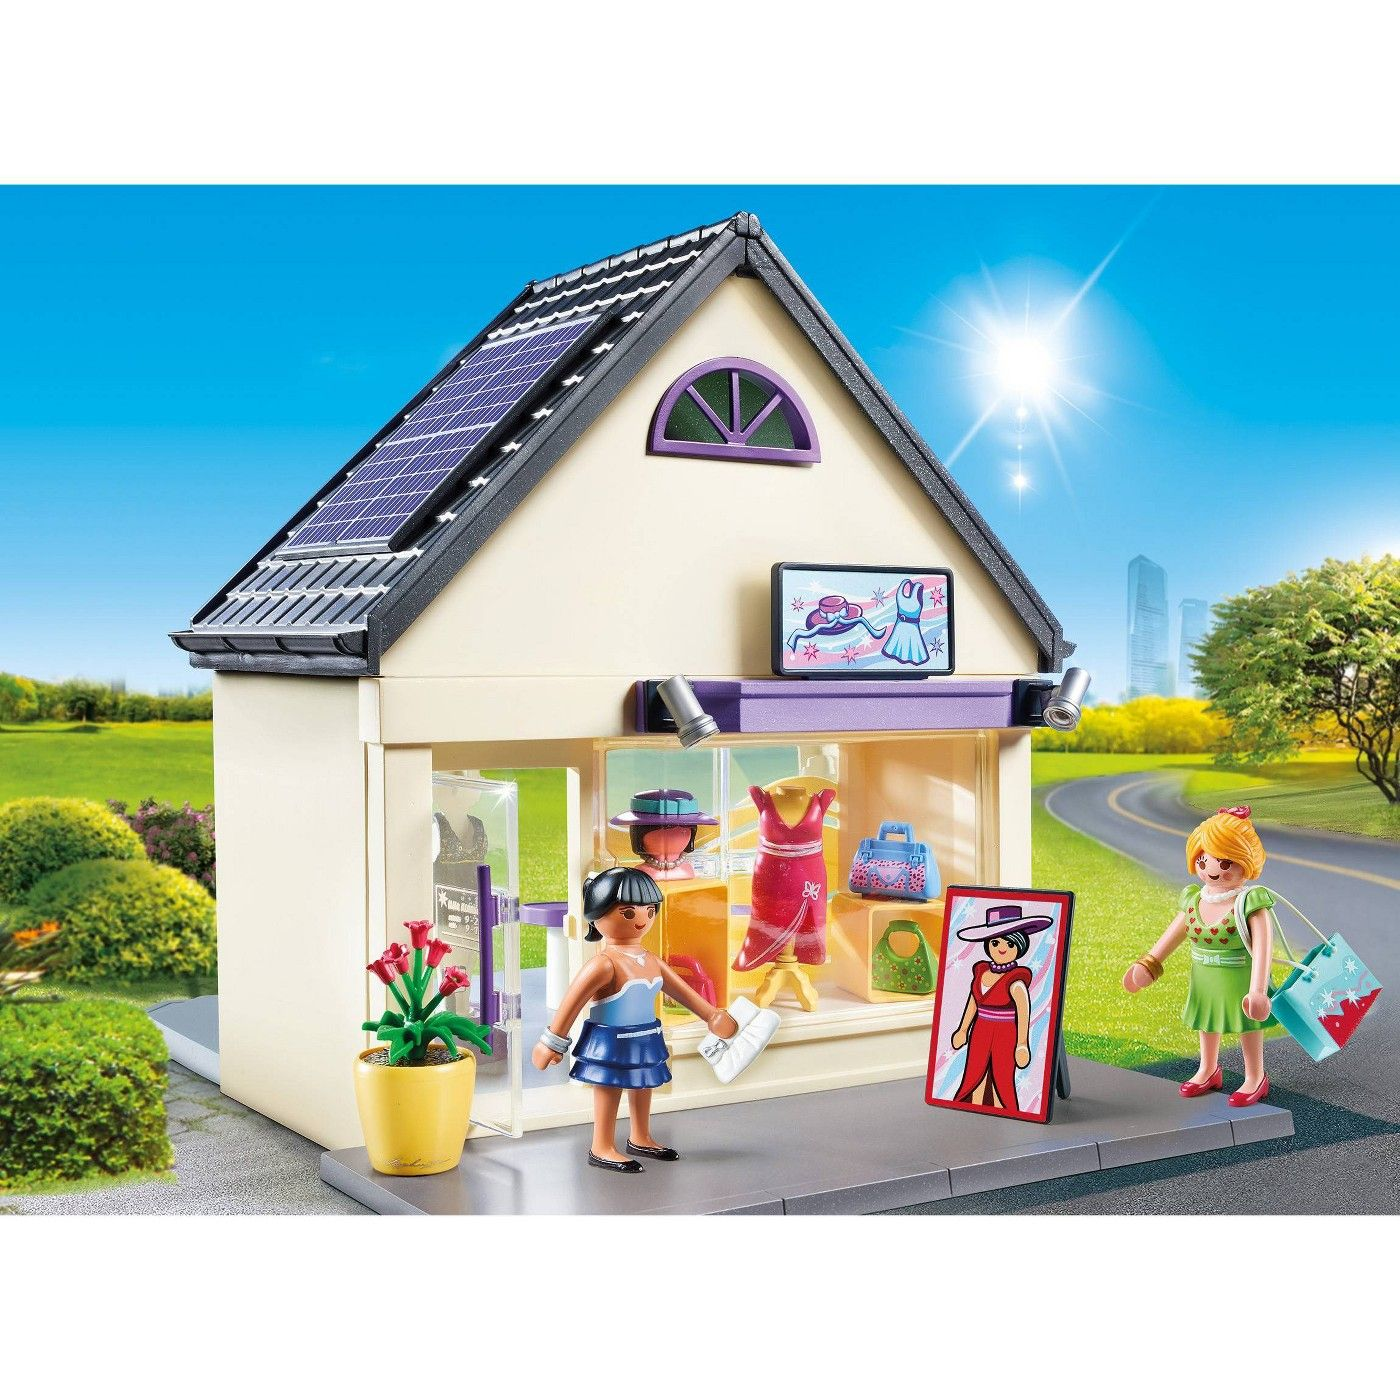 Playmobil My Fashion Boutique In 2020 Fashion Boutique Playmobil Boutique